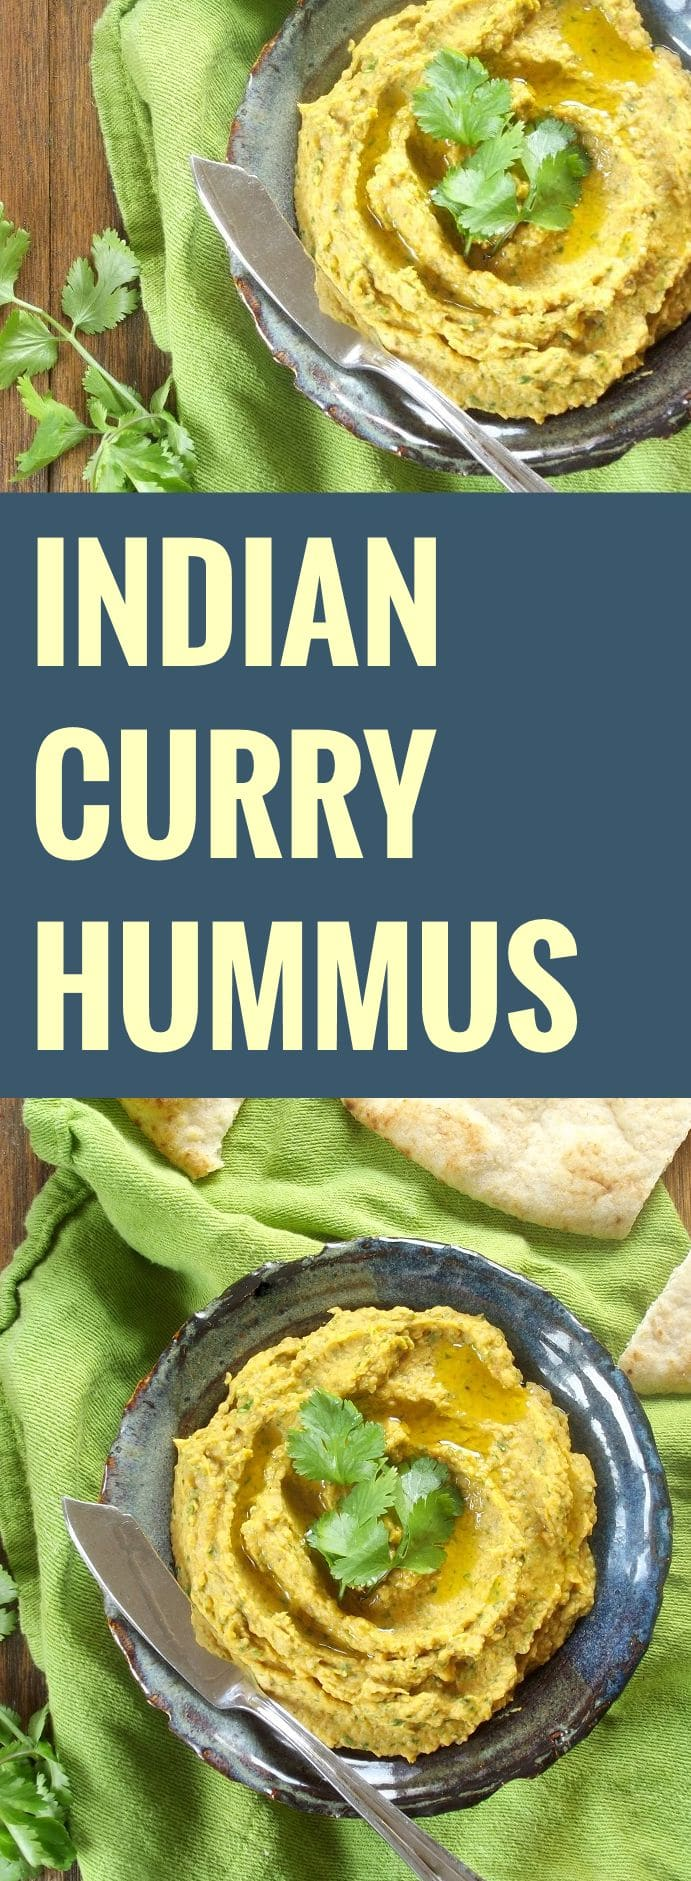 Indian Curry Hummus